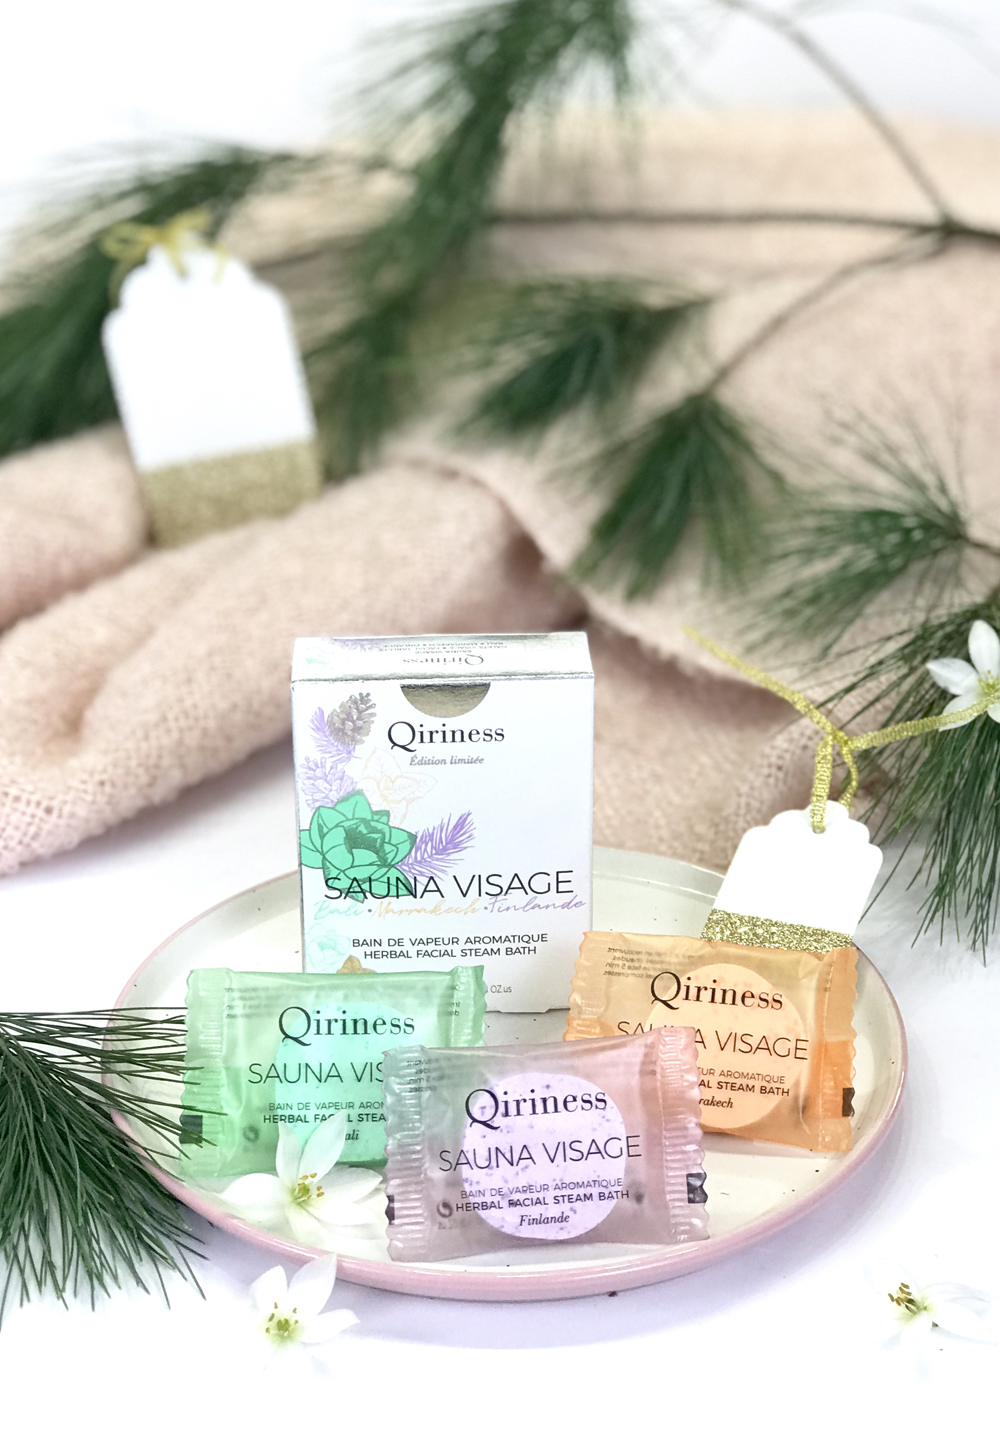 Air Chic Design:disque externe:EXOChic:1 -POSTS:1 - ARTICLES:2018:12 - DECEMBRE:02 - SPA QIRINESS:spa :image blog:Sauna Visage Bain de Vapeur Aromatique Qiriness Exochic 4.jpg